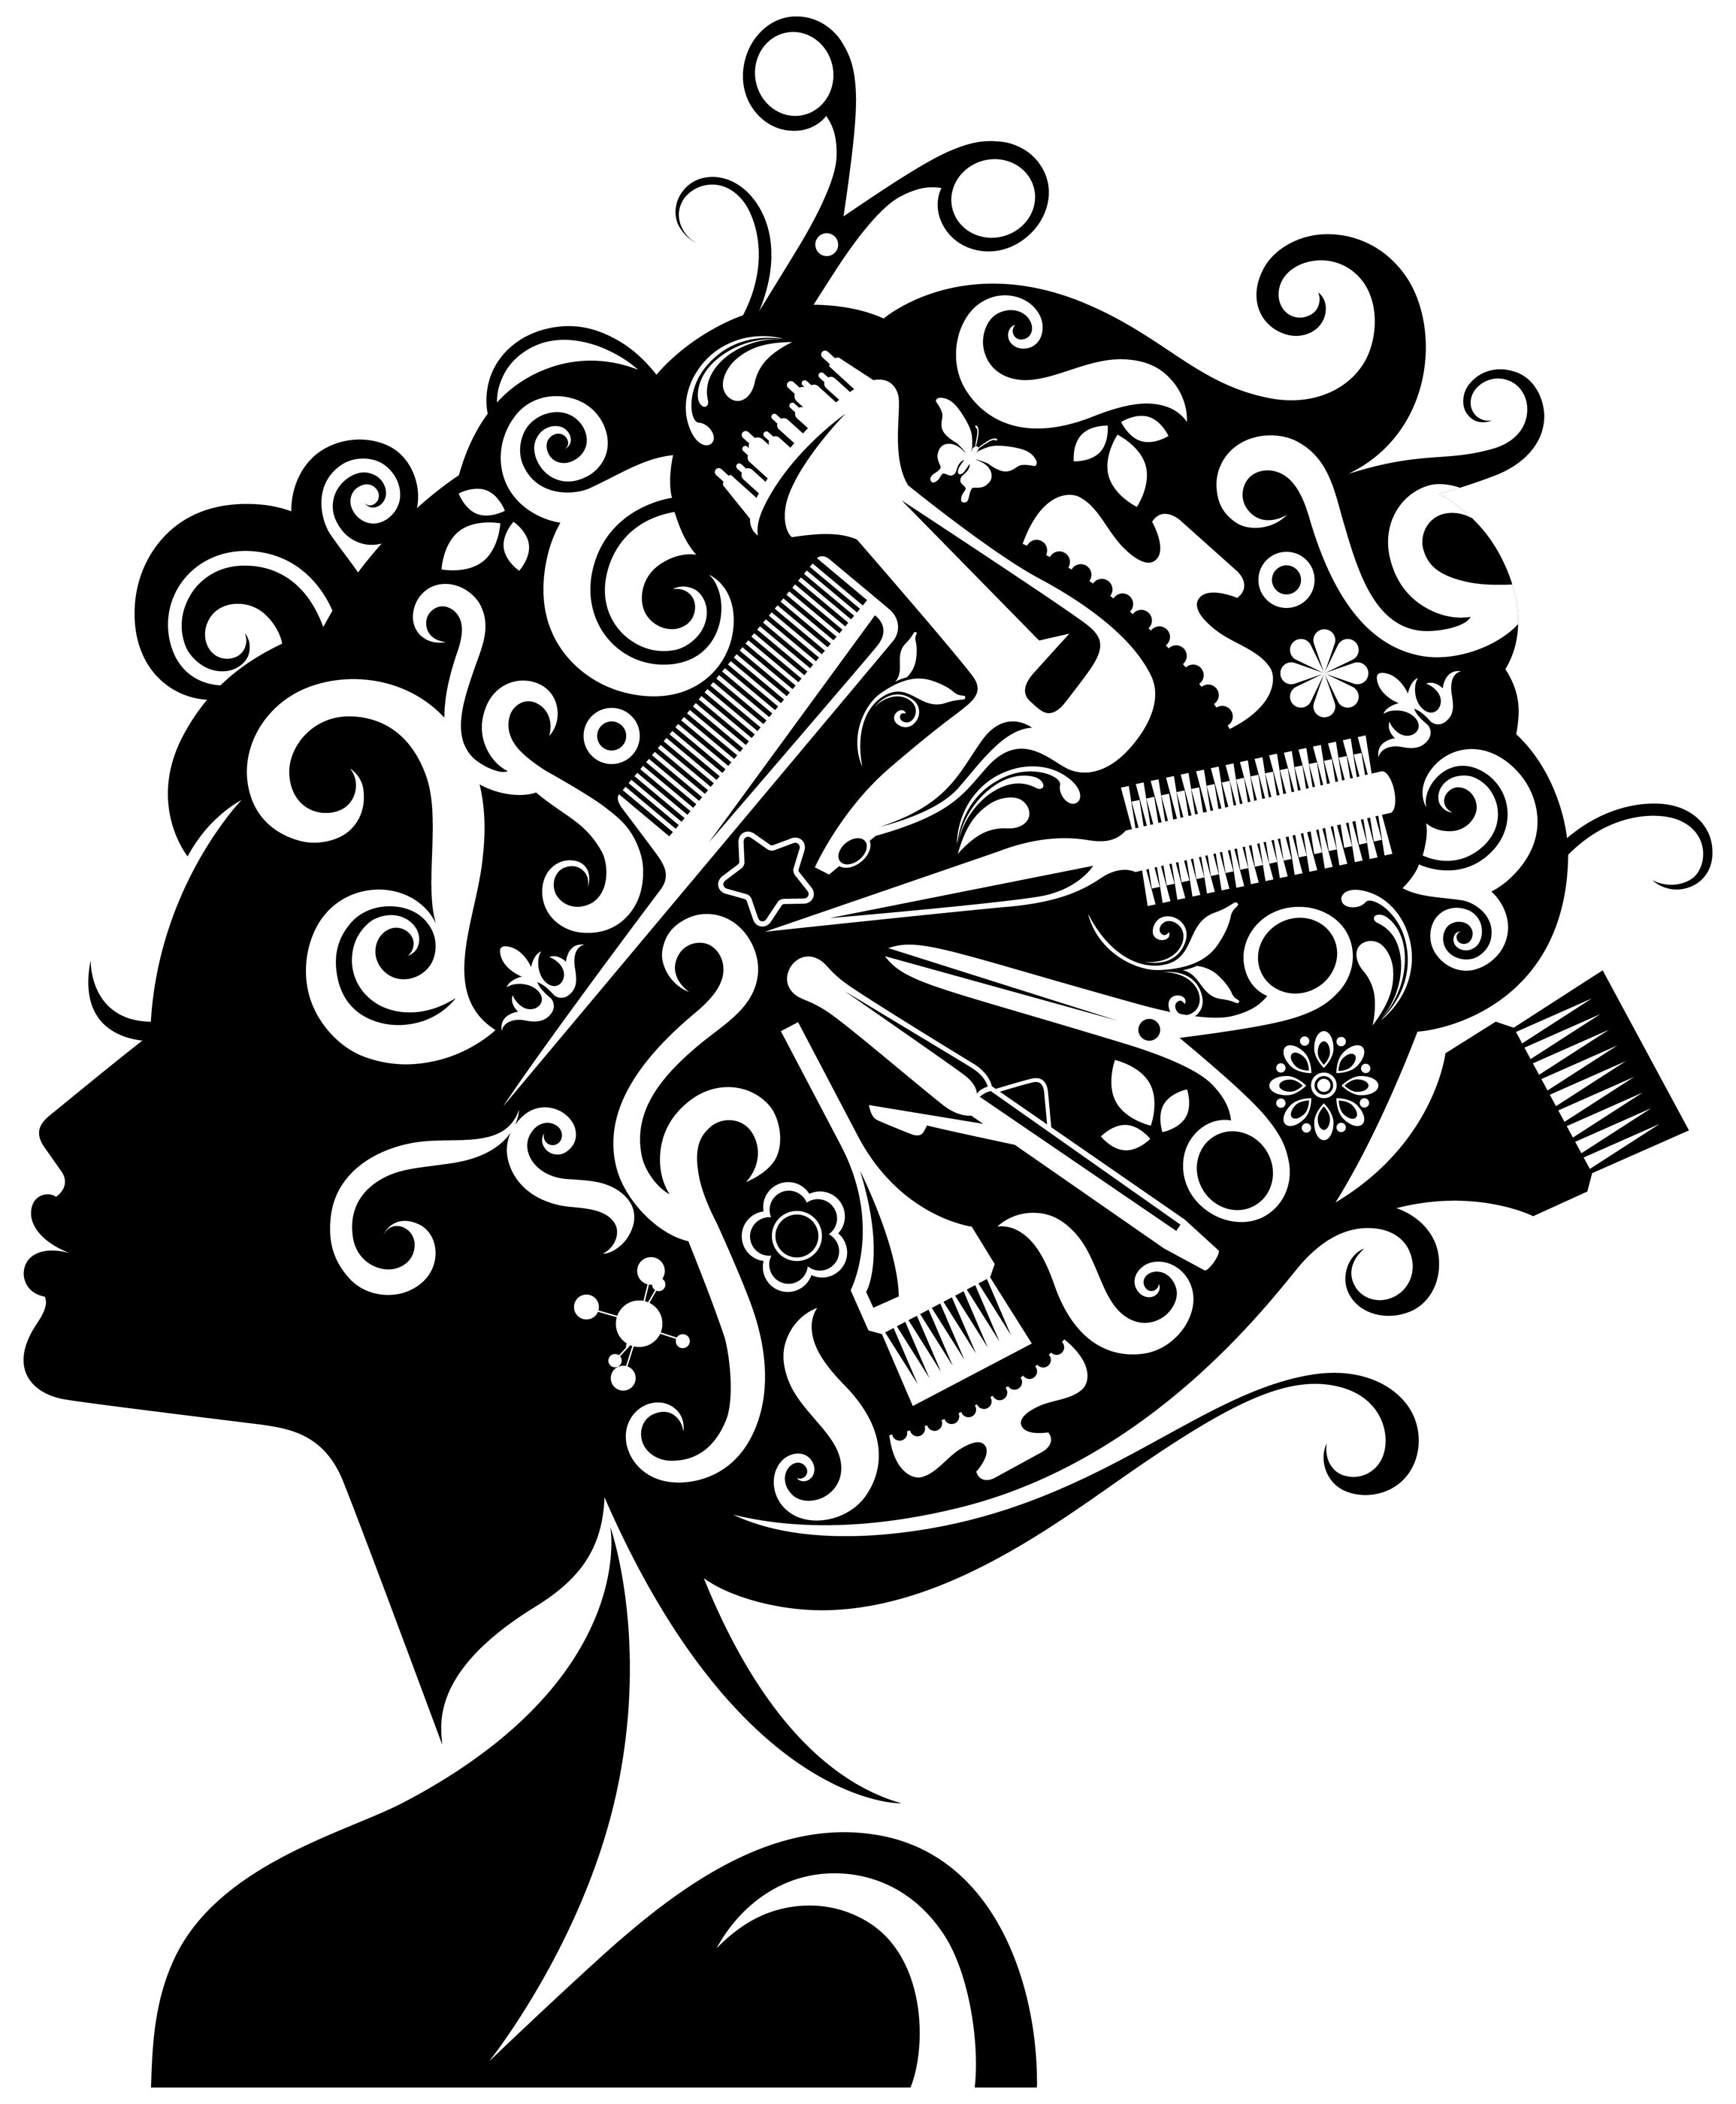 Hairdresser clipart cosmetology school, Hairdresser.